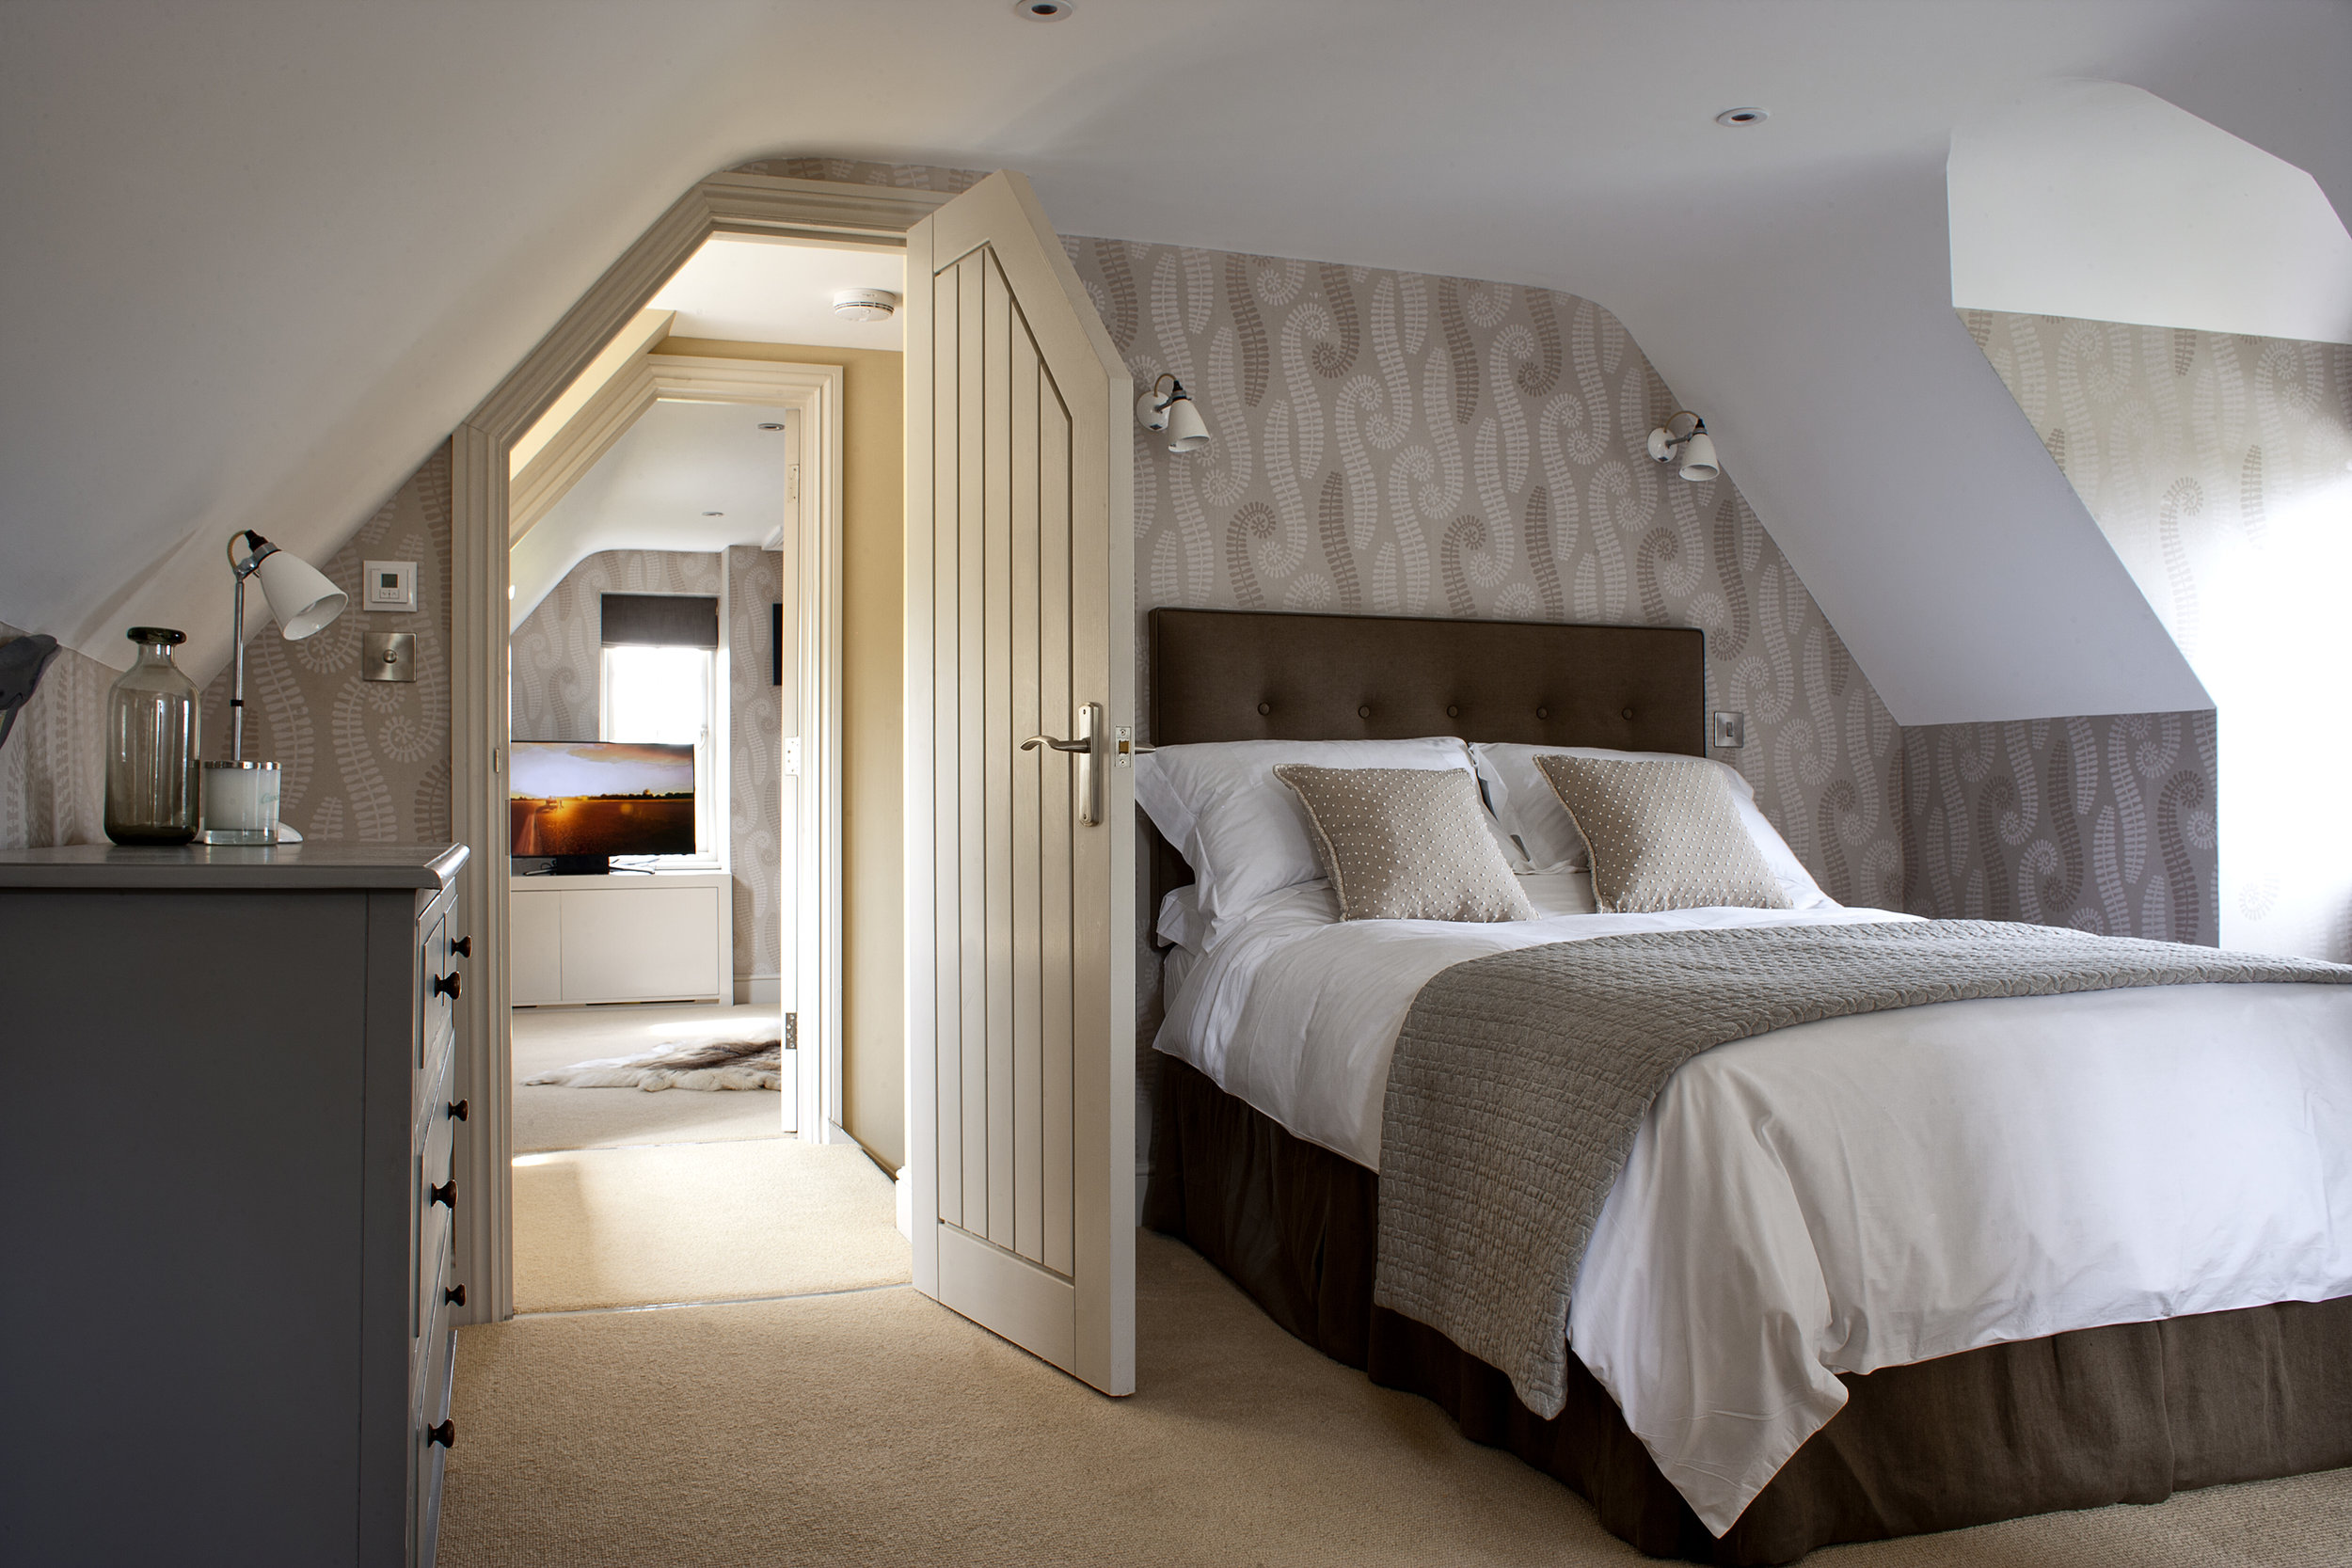 Cotton_Tree_Interiors_Guest_Bedroom.jpg